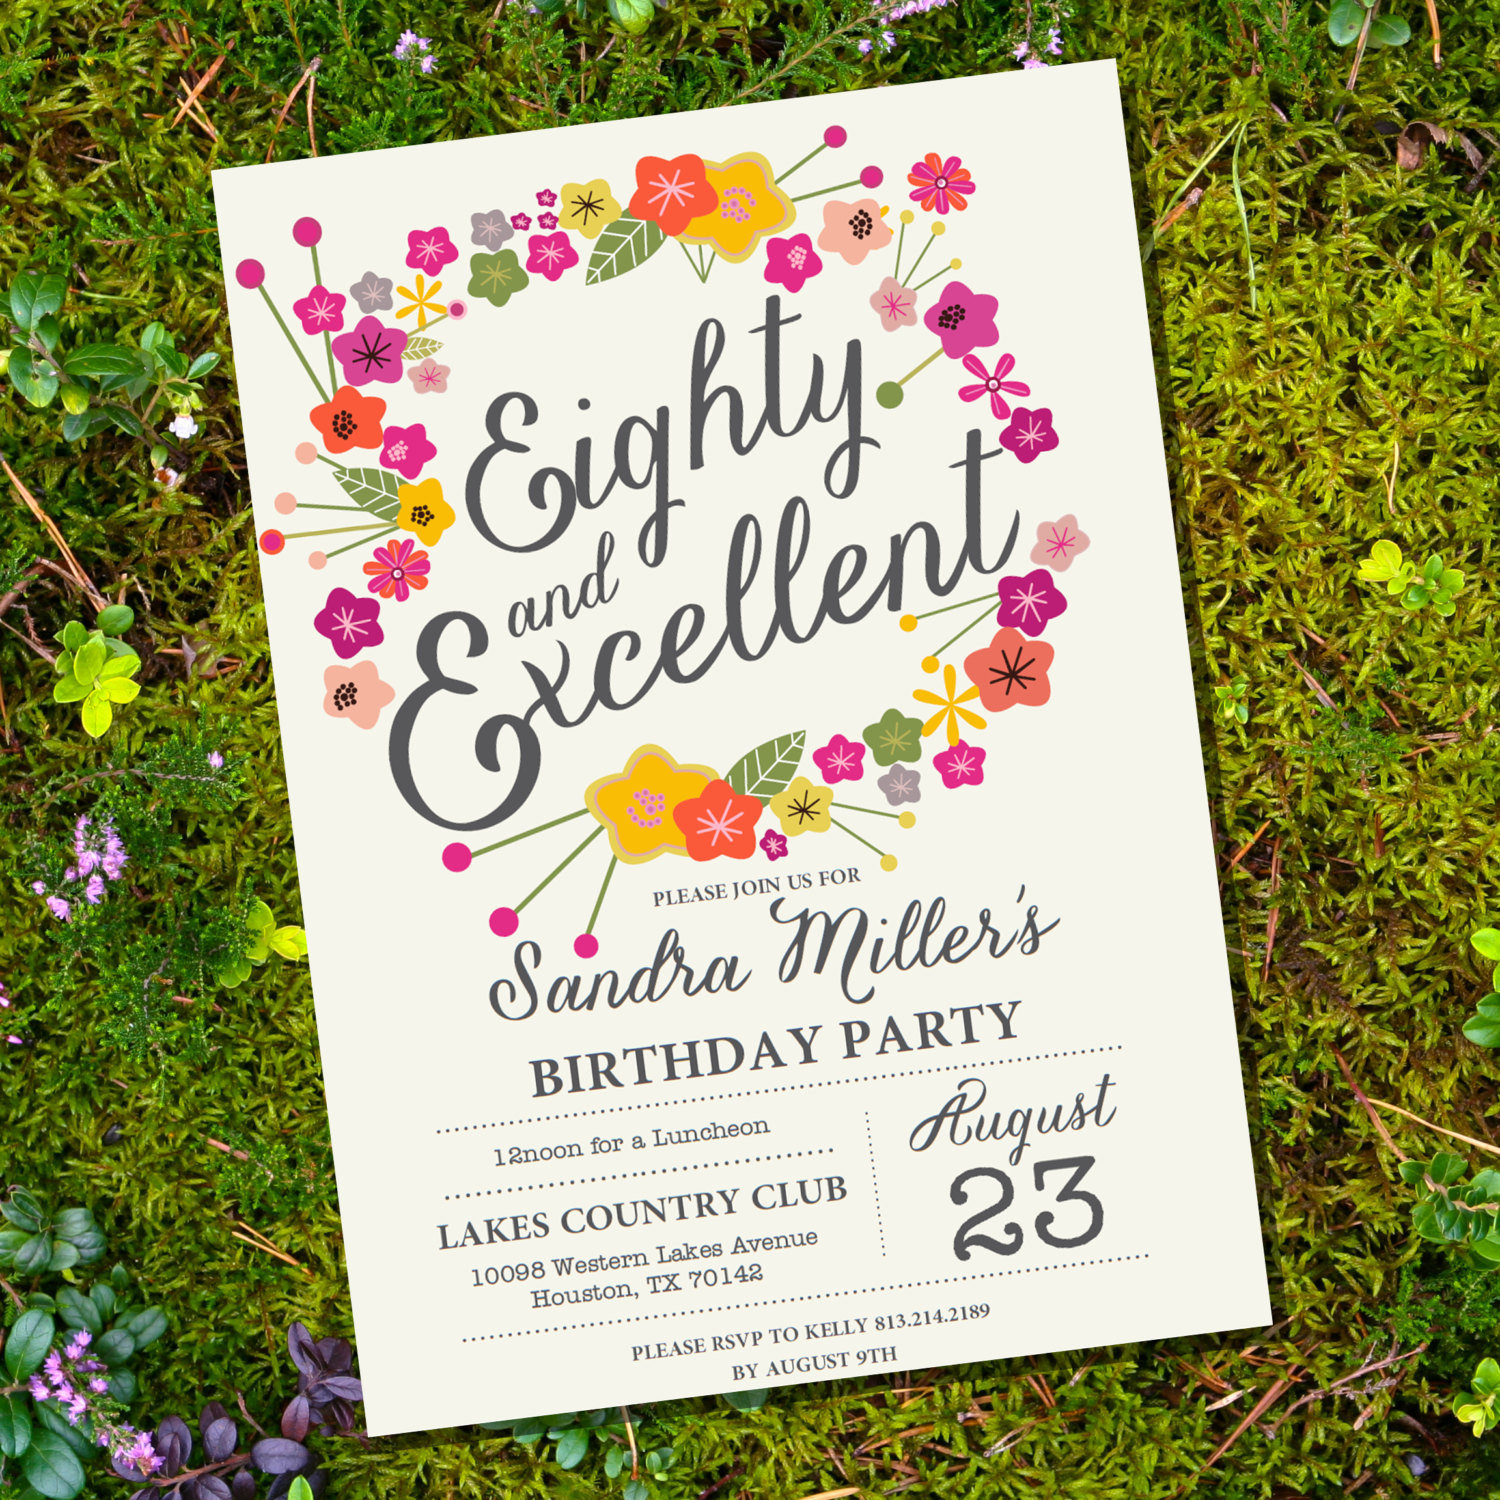 Best ideas about Floral Birthday Invitations . Save or Pin Floral Eightieth Birthday Invitation 80th birthday Now.